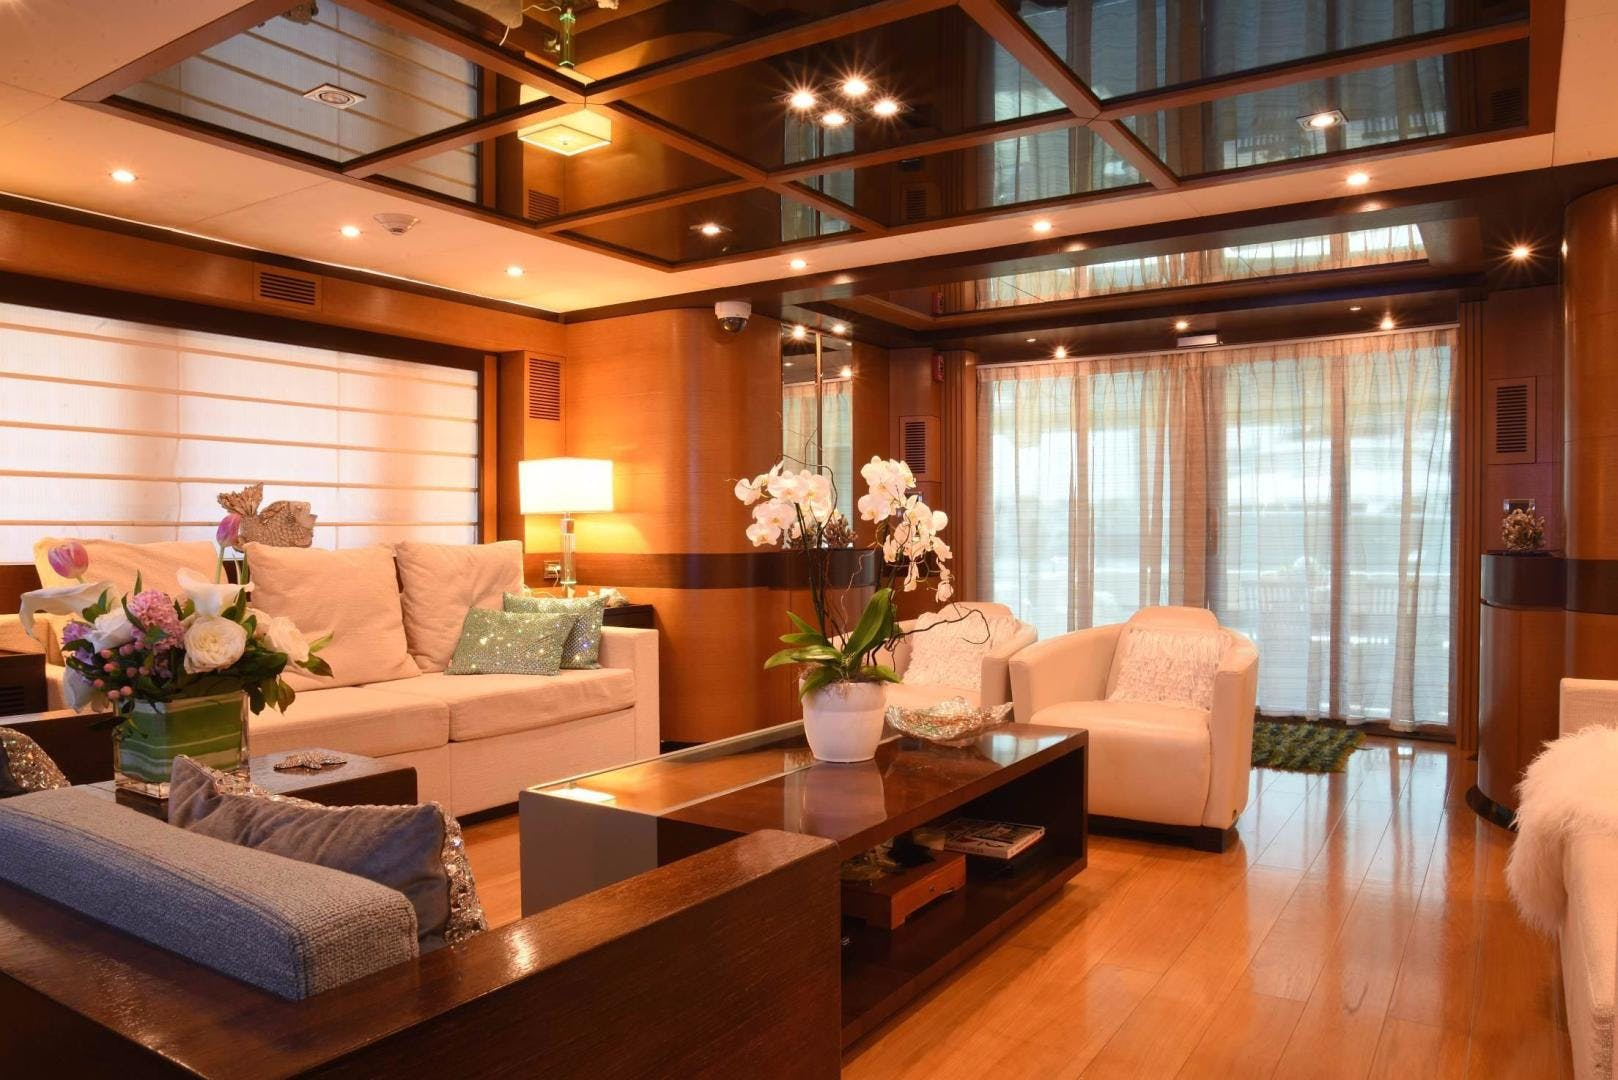 2010 IAG 127' Motor Yacht KIMBERLIE   Picture 3 of 53